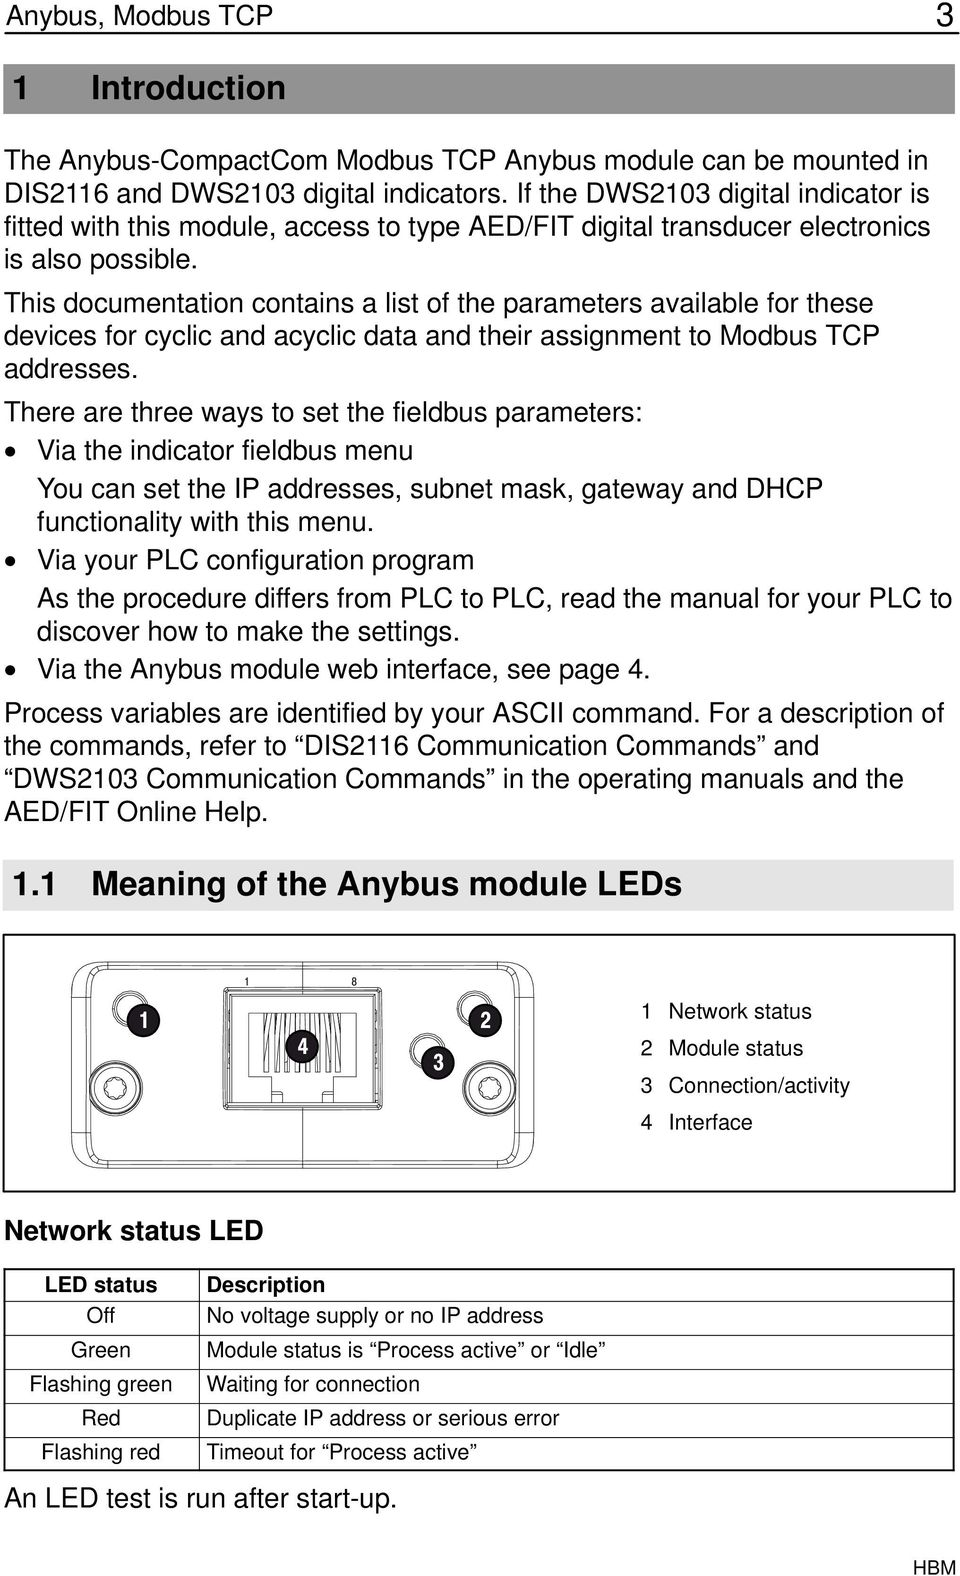 This documentation contains a list of the parameters available for these devices for cyclic and acyclic data and their assignment to Modbus TCP addresses.